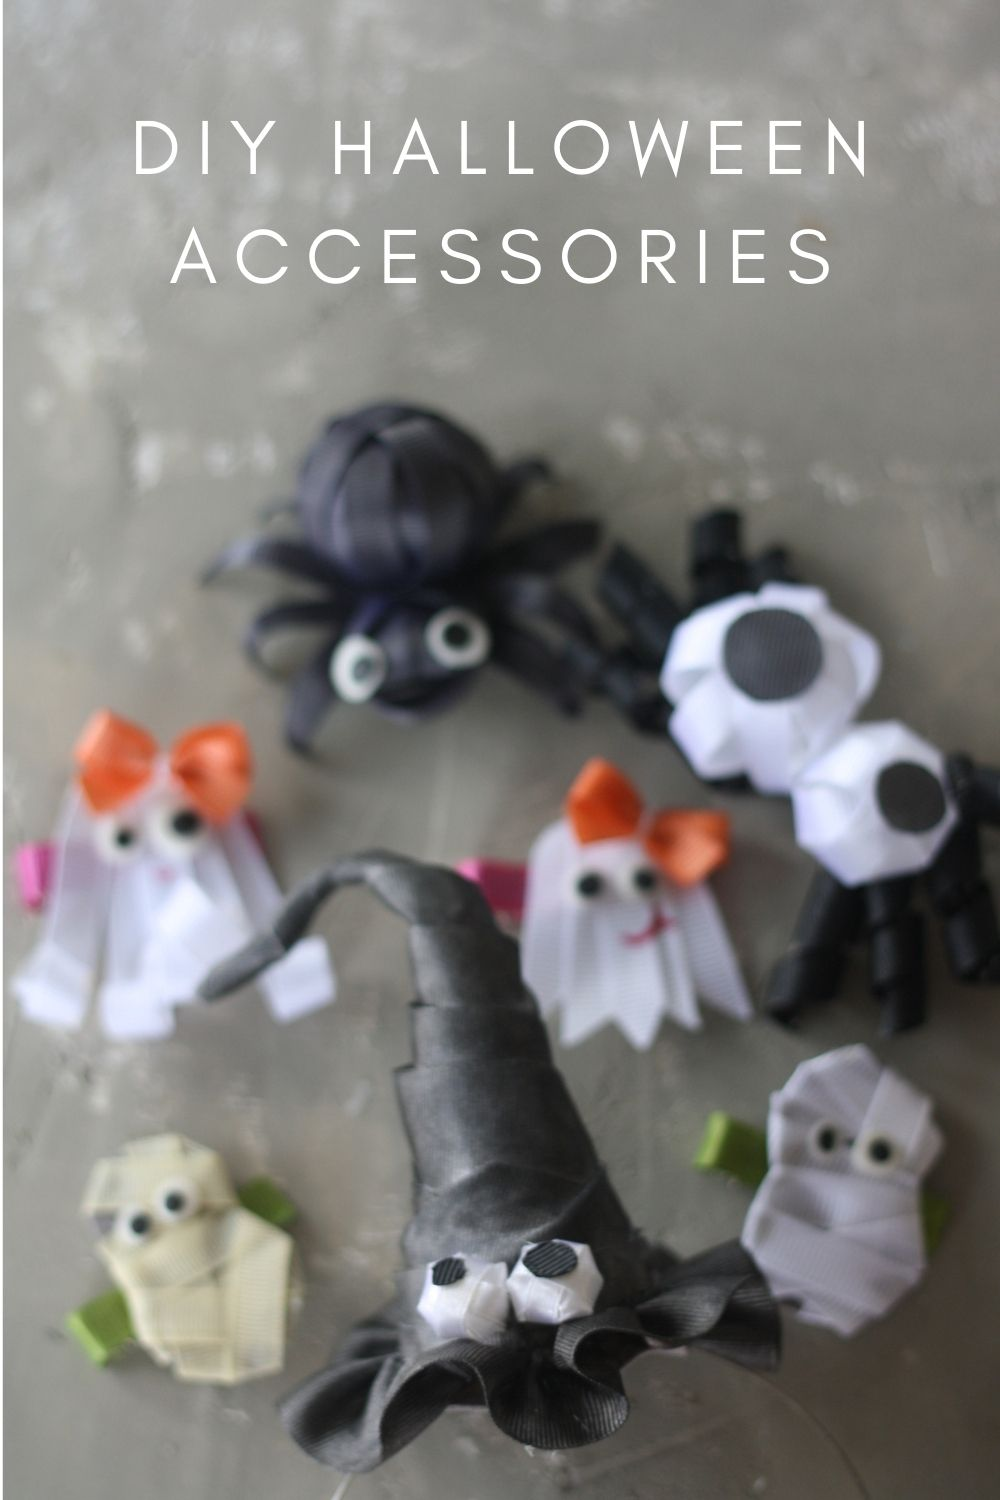 HOW TO MAKE HALLOWEEN ACCESSORIES FROM RIBBONS